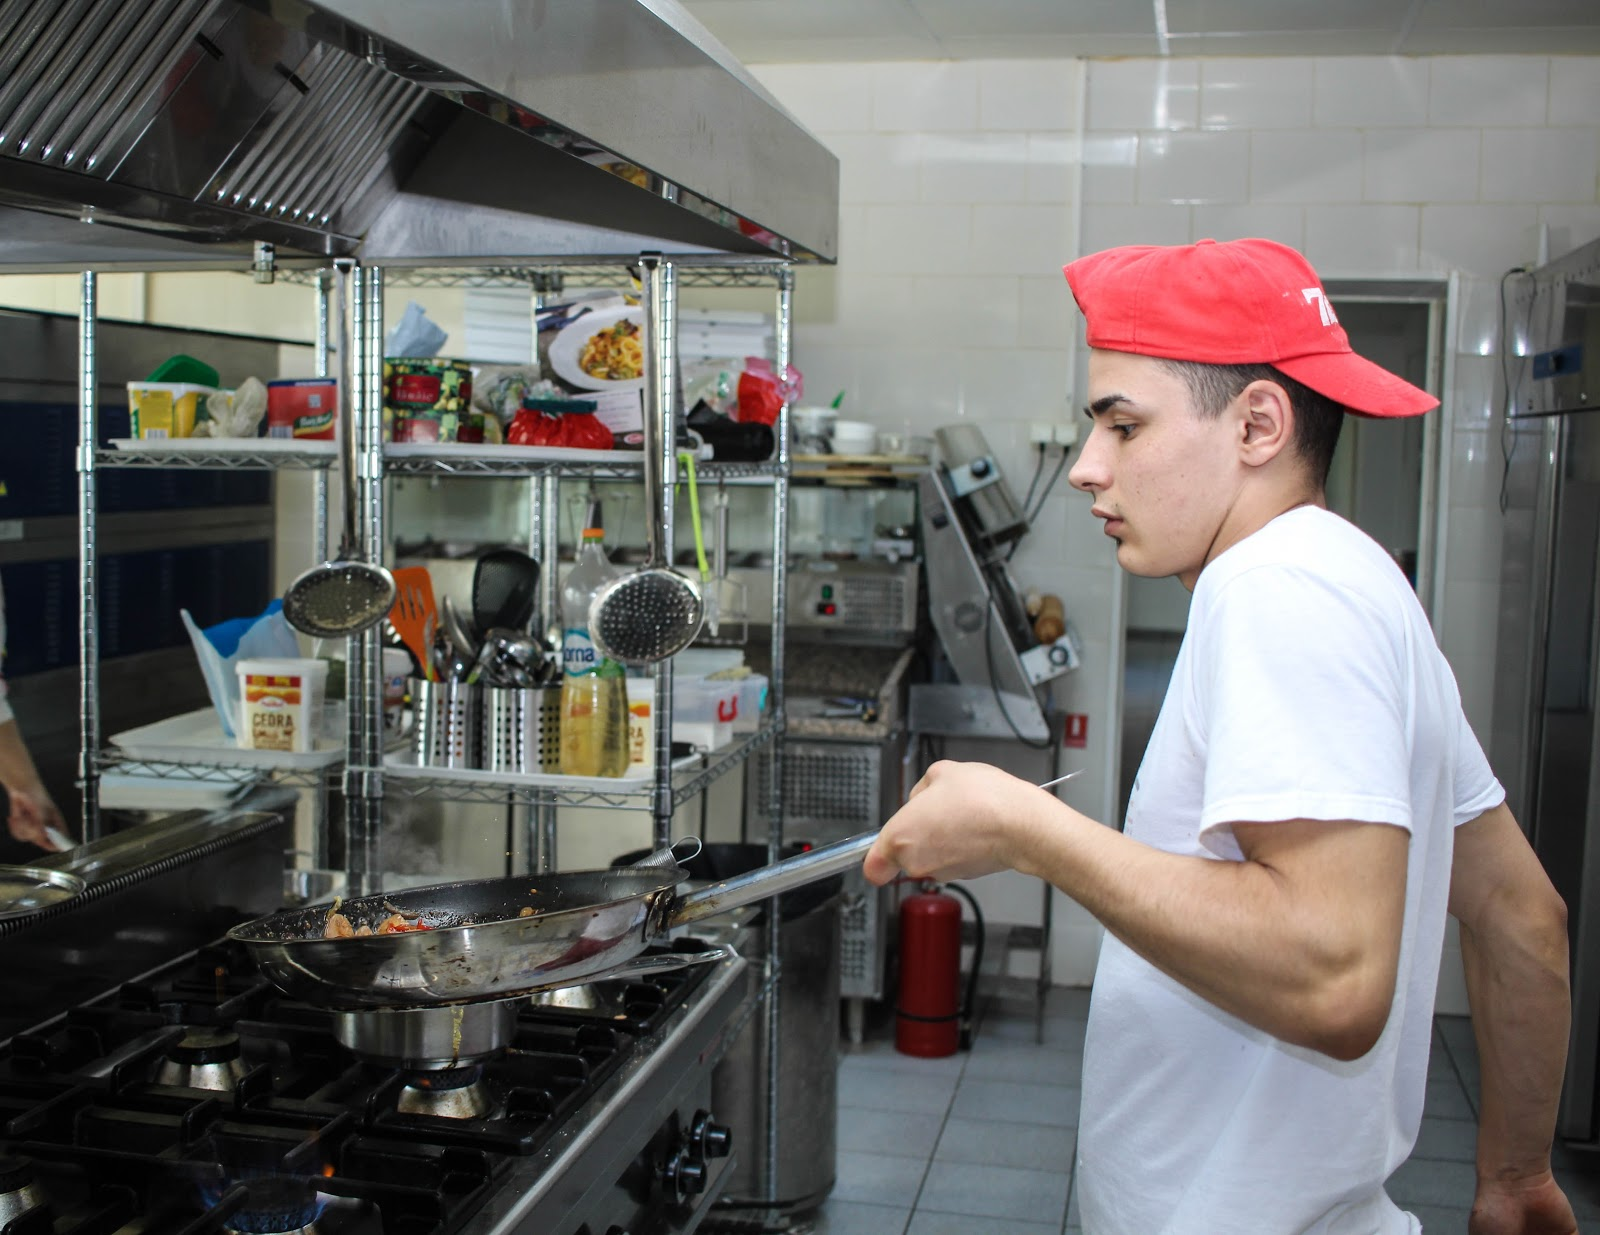 Line cook at a restaurant